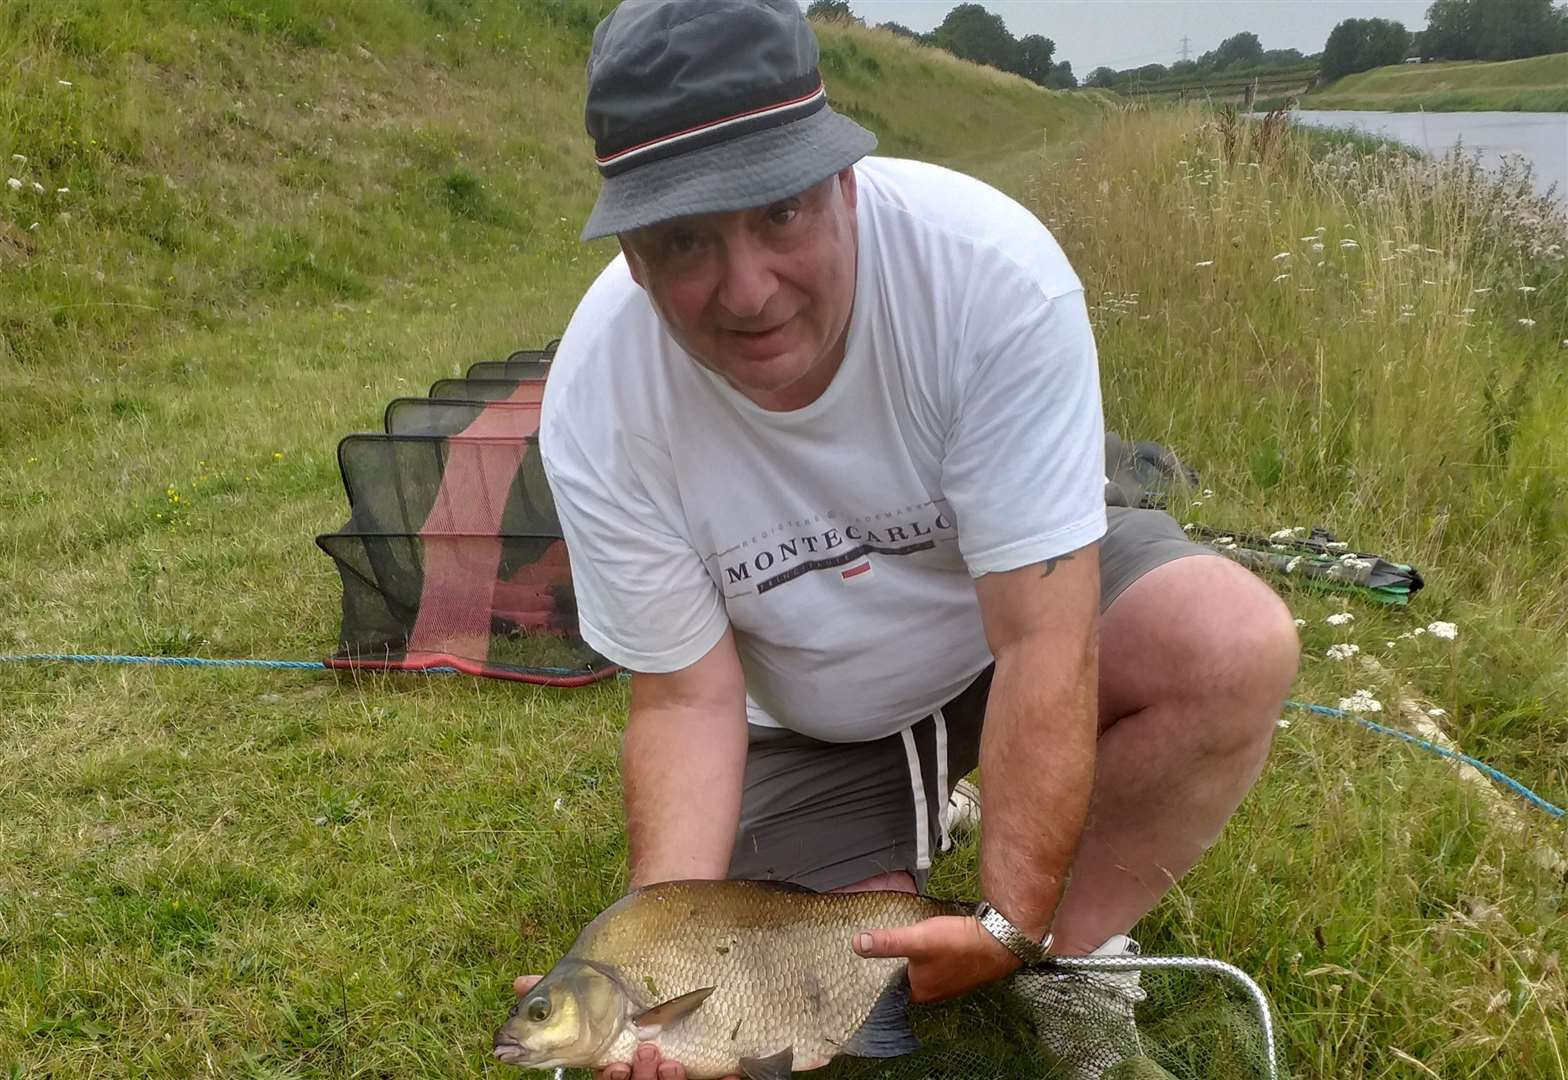 Angling: In-form Dave bags double top